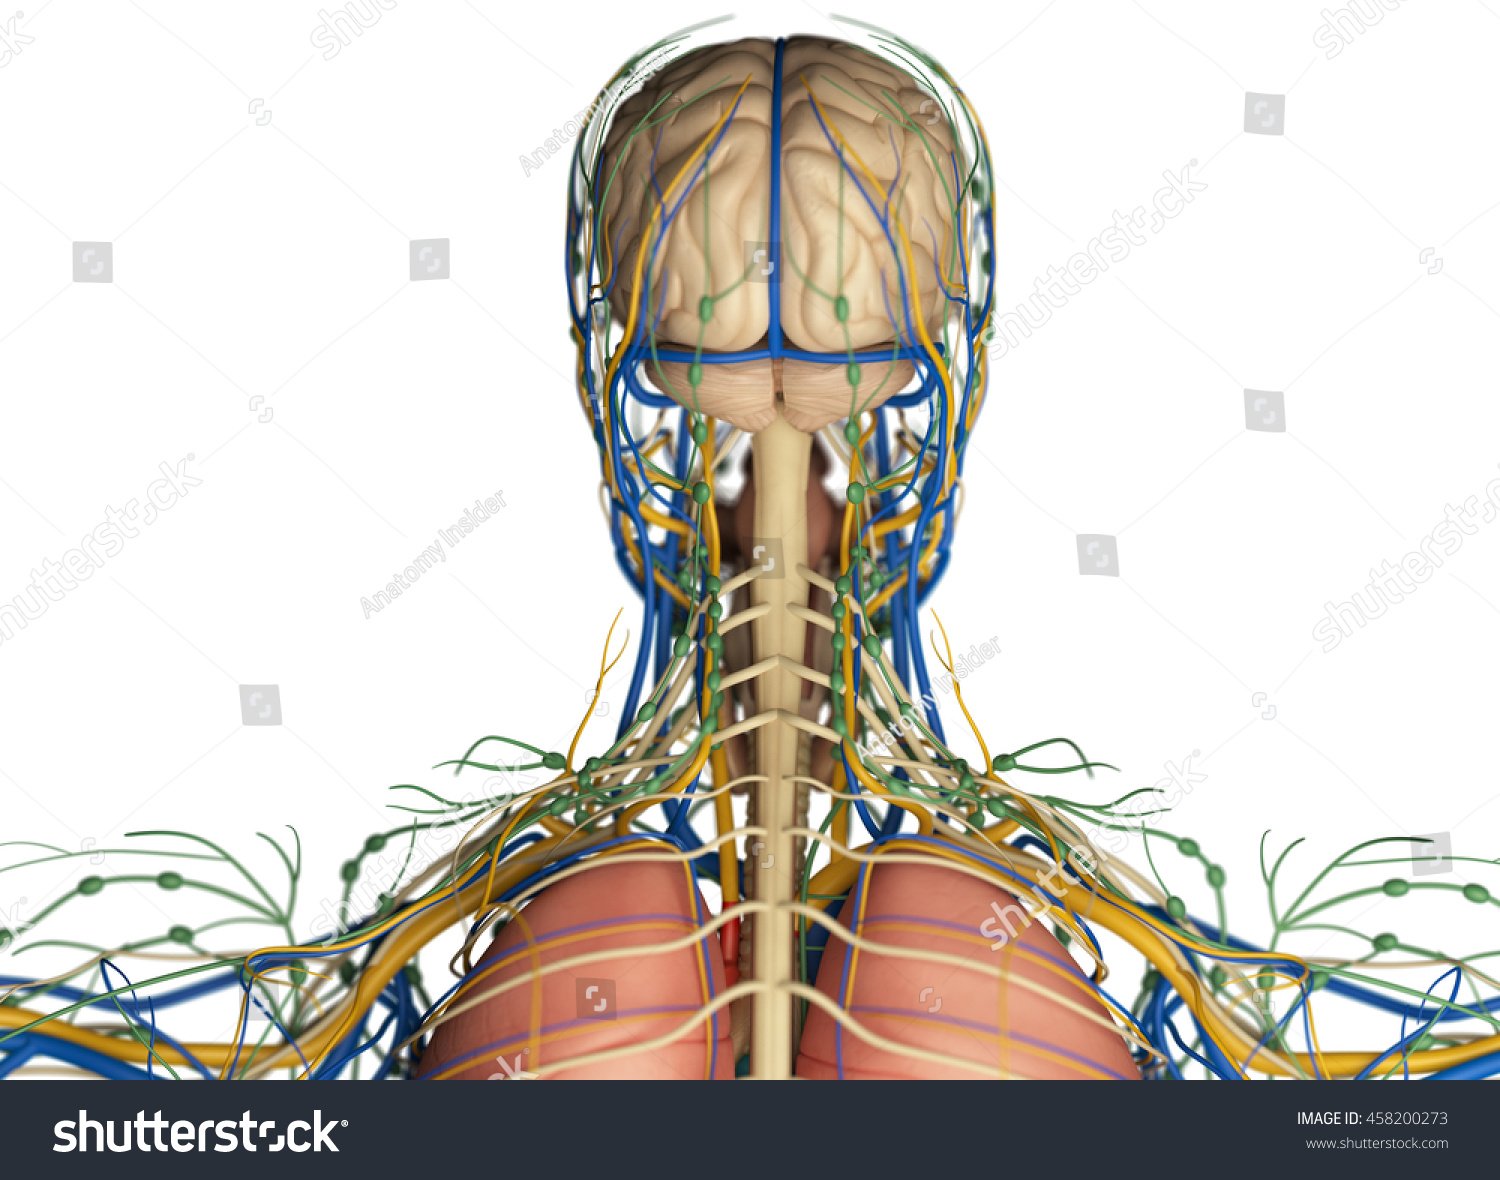 Brain Arteries Nerves Lymph Nodes Human Stock Illustration 458200273 ...